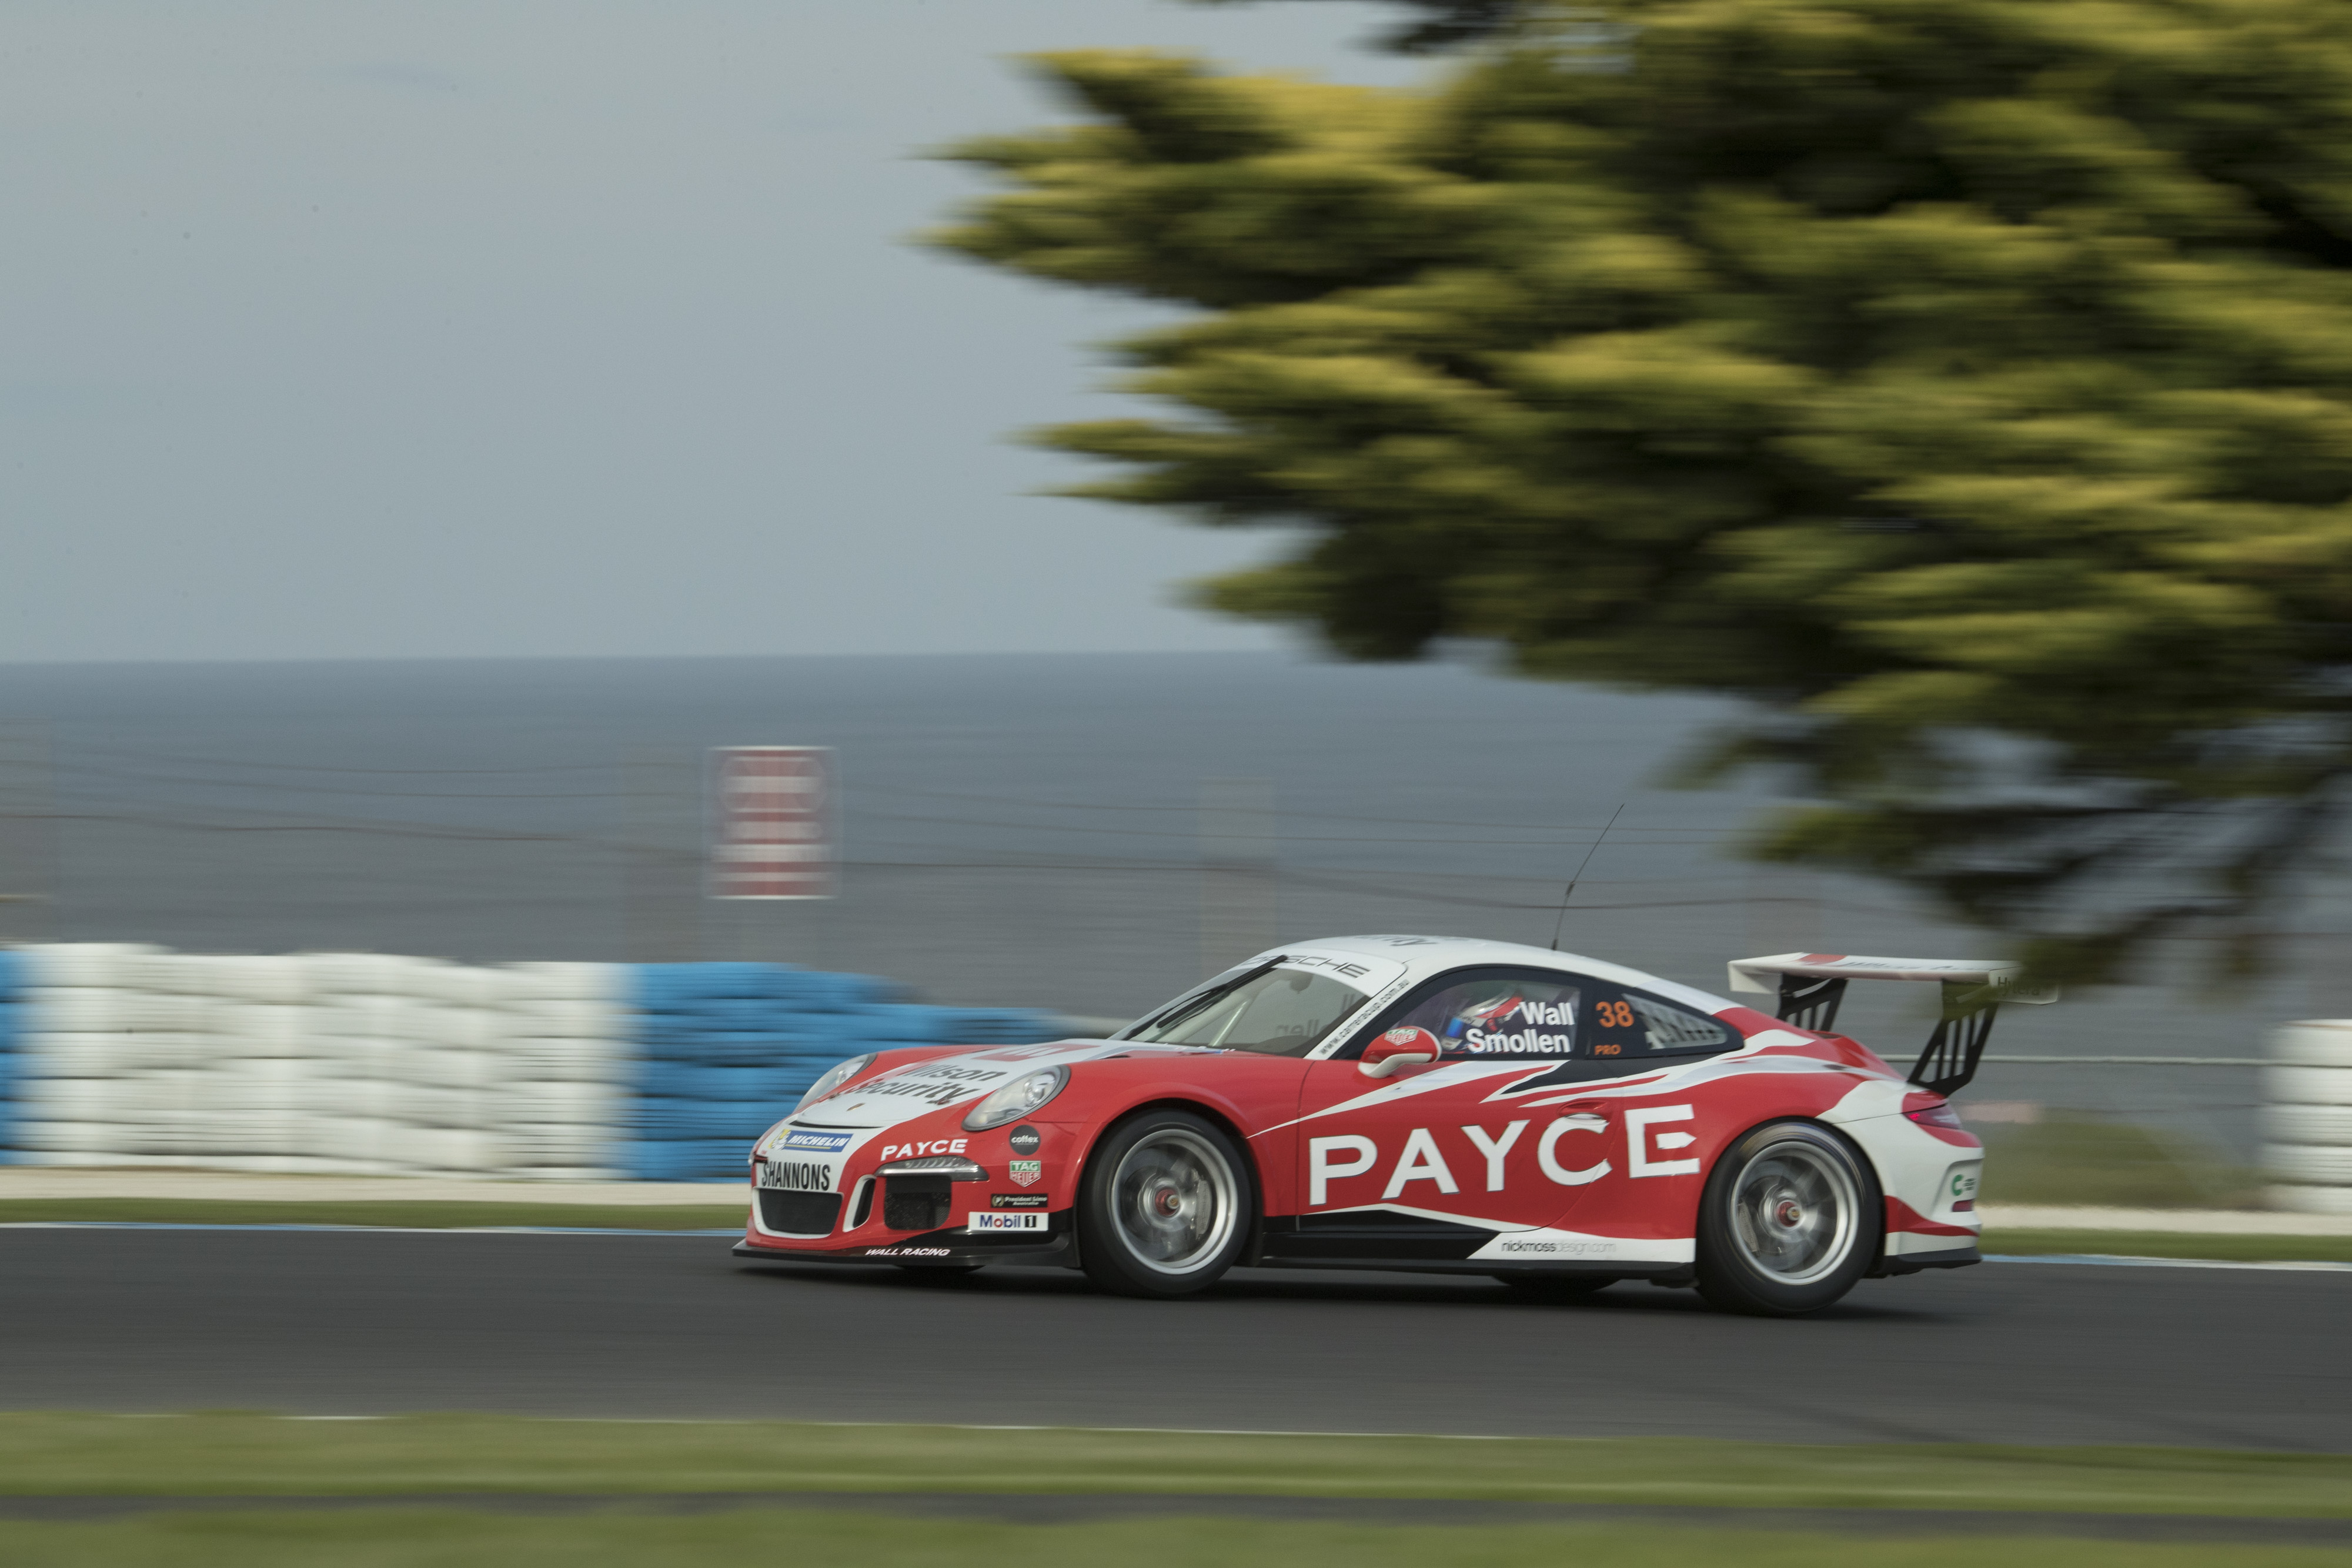 p38-Wall-CarreraCup-R3-2017-02385